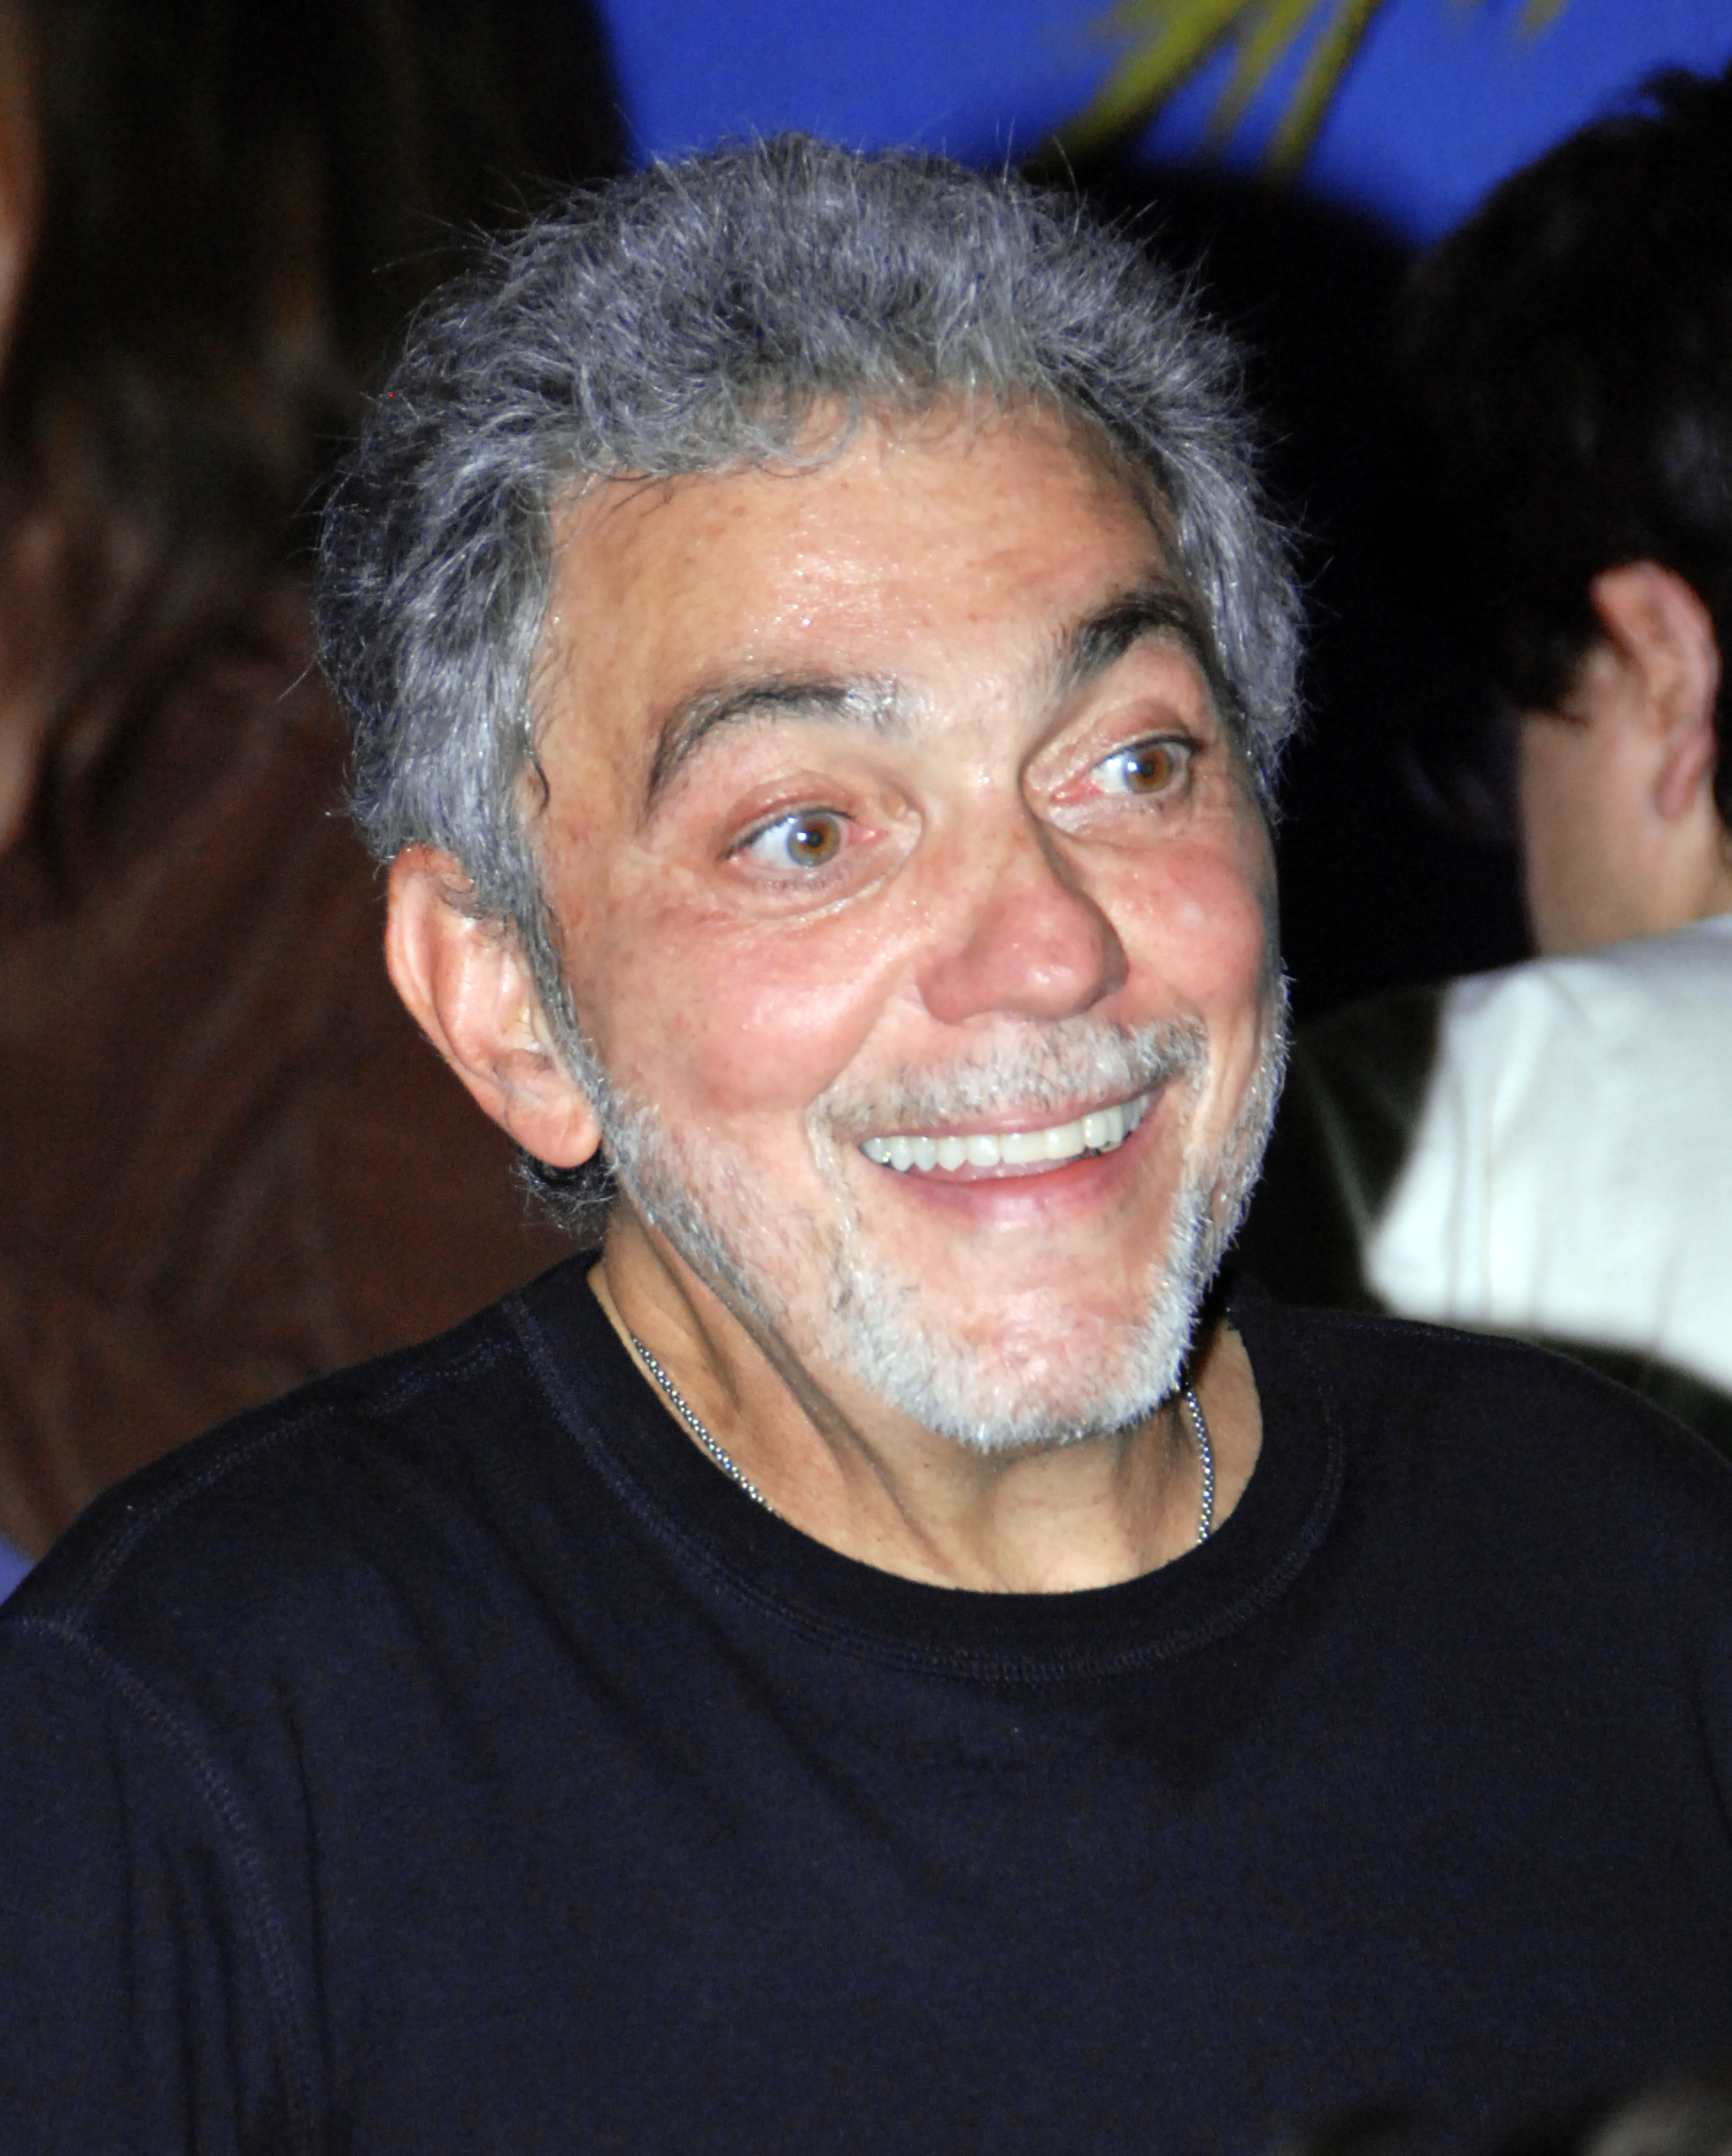 how tall is steve gadd